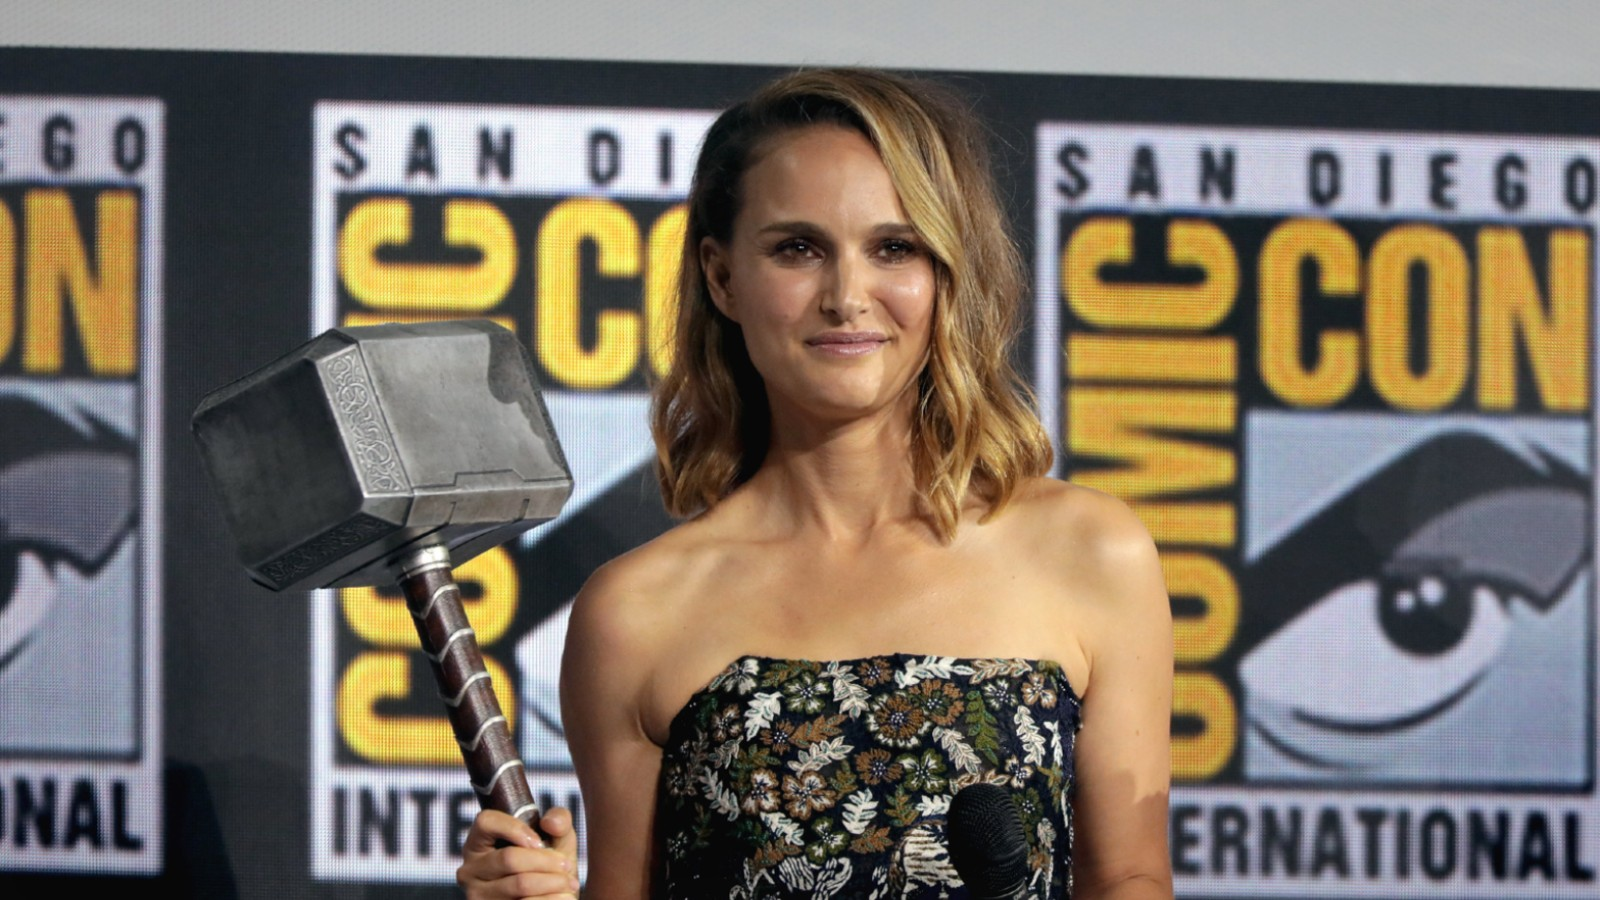 Natalie Portman at San Diego Comic Con